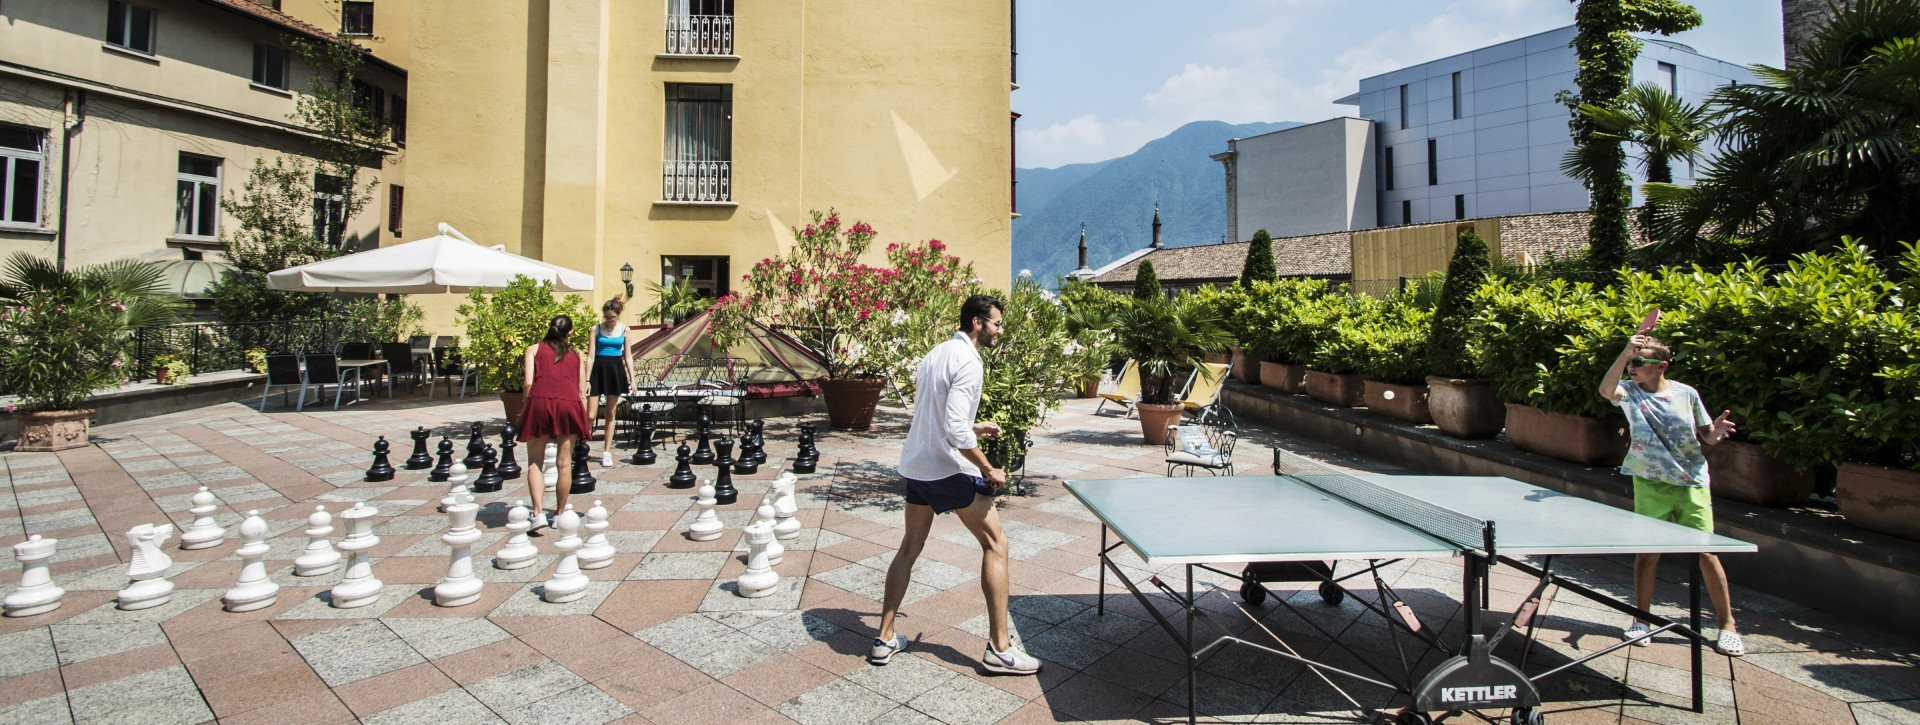 People play ping pong and chess at the hotels garden